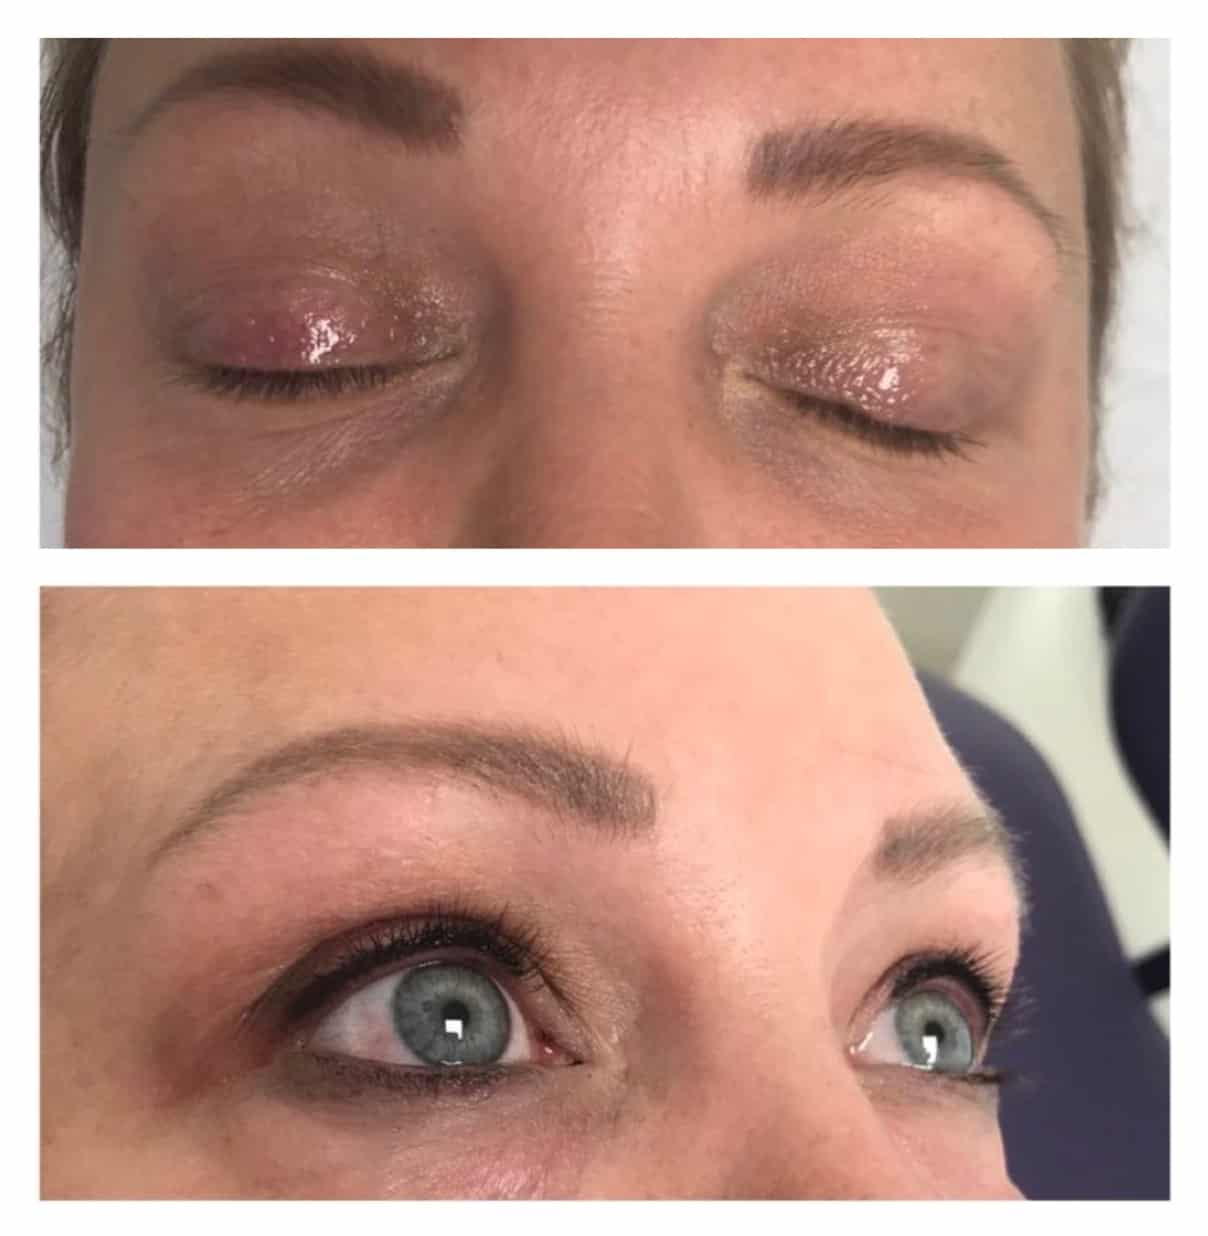 Defined look upper lid eyeliner before and after